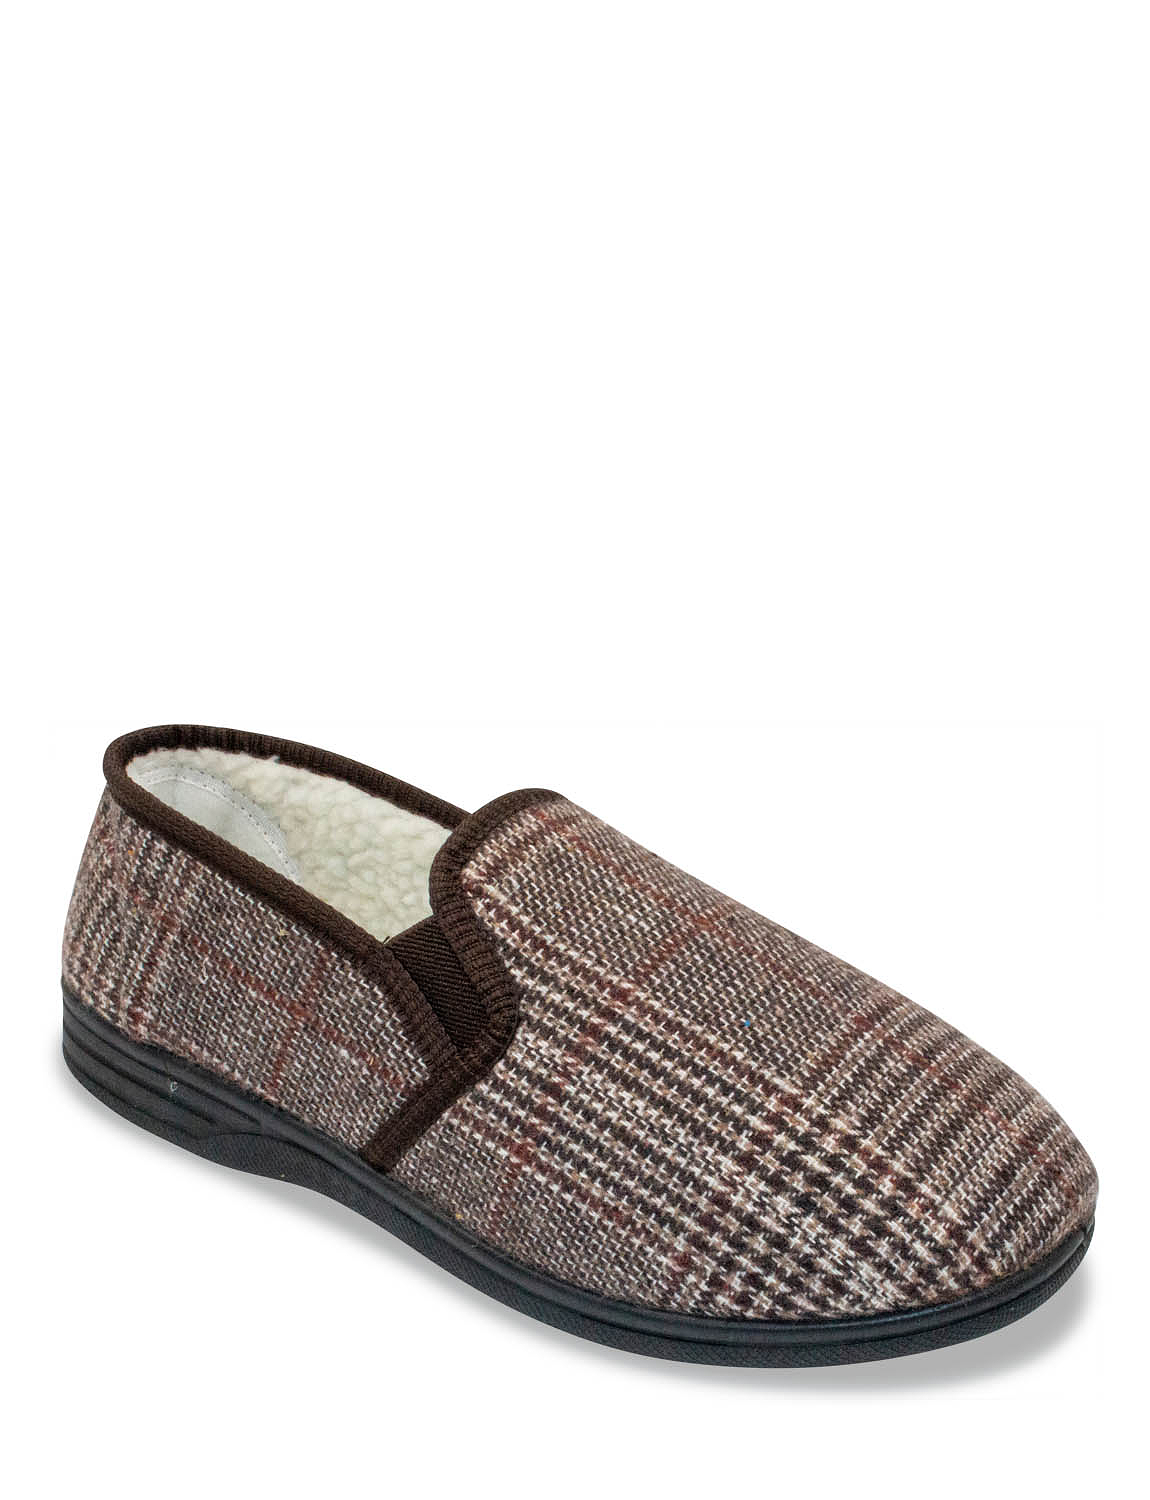 Fleece Lined Slipper with Outdoor Sole - Brown